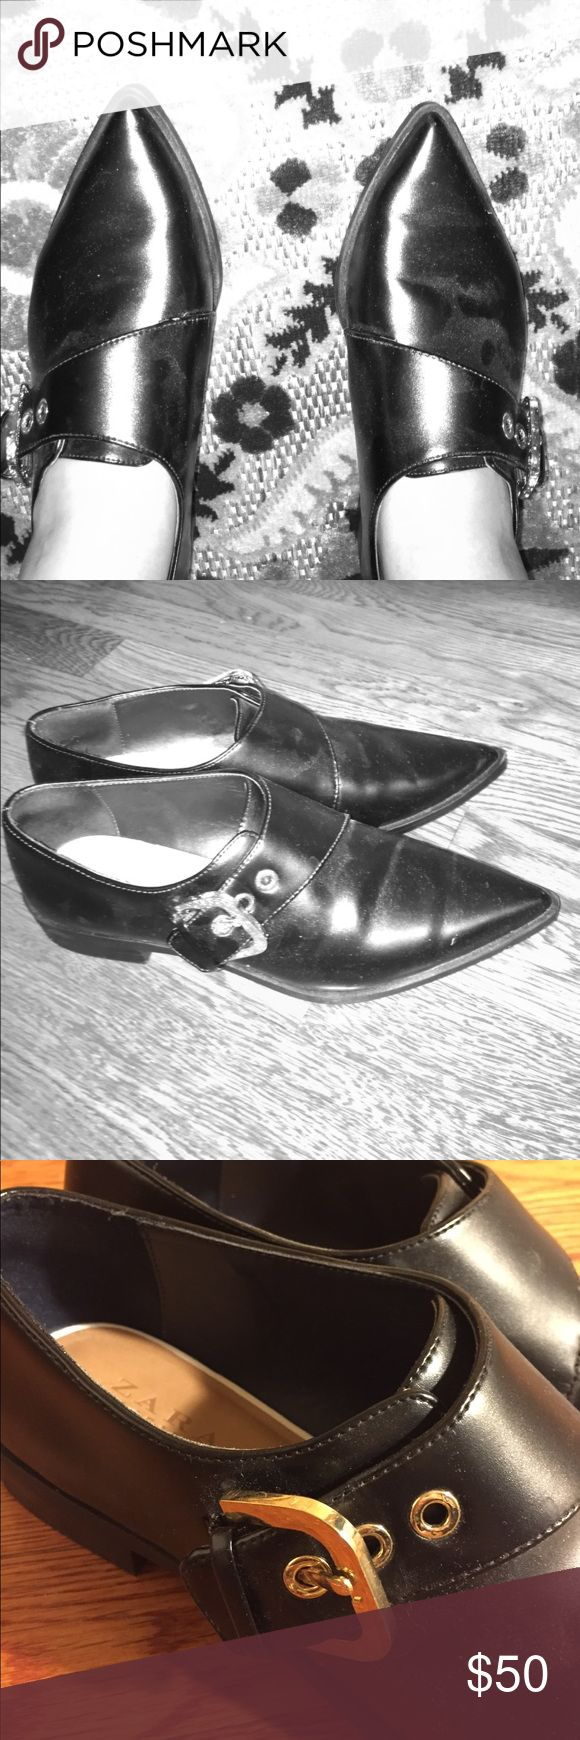 ⚫️Classy Flats⚫️ Bought them from Zara online. You close the shoe with the belt design clasp. Great condition. Looks brand new because i only wore it once or twice. Looks great for work/business casual attire. I am a size 8 and these fit perfectly. It says size 39 which Zara identified as 8. Also, on the right shoe there is a small scratch of dust or something that can be easily hidden with shoe shine. Zara Shoes